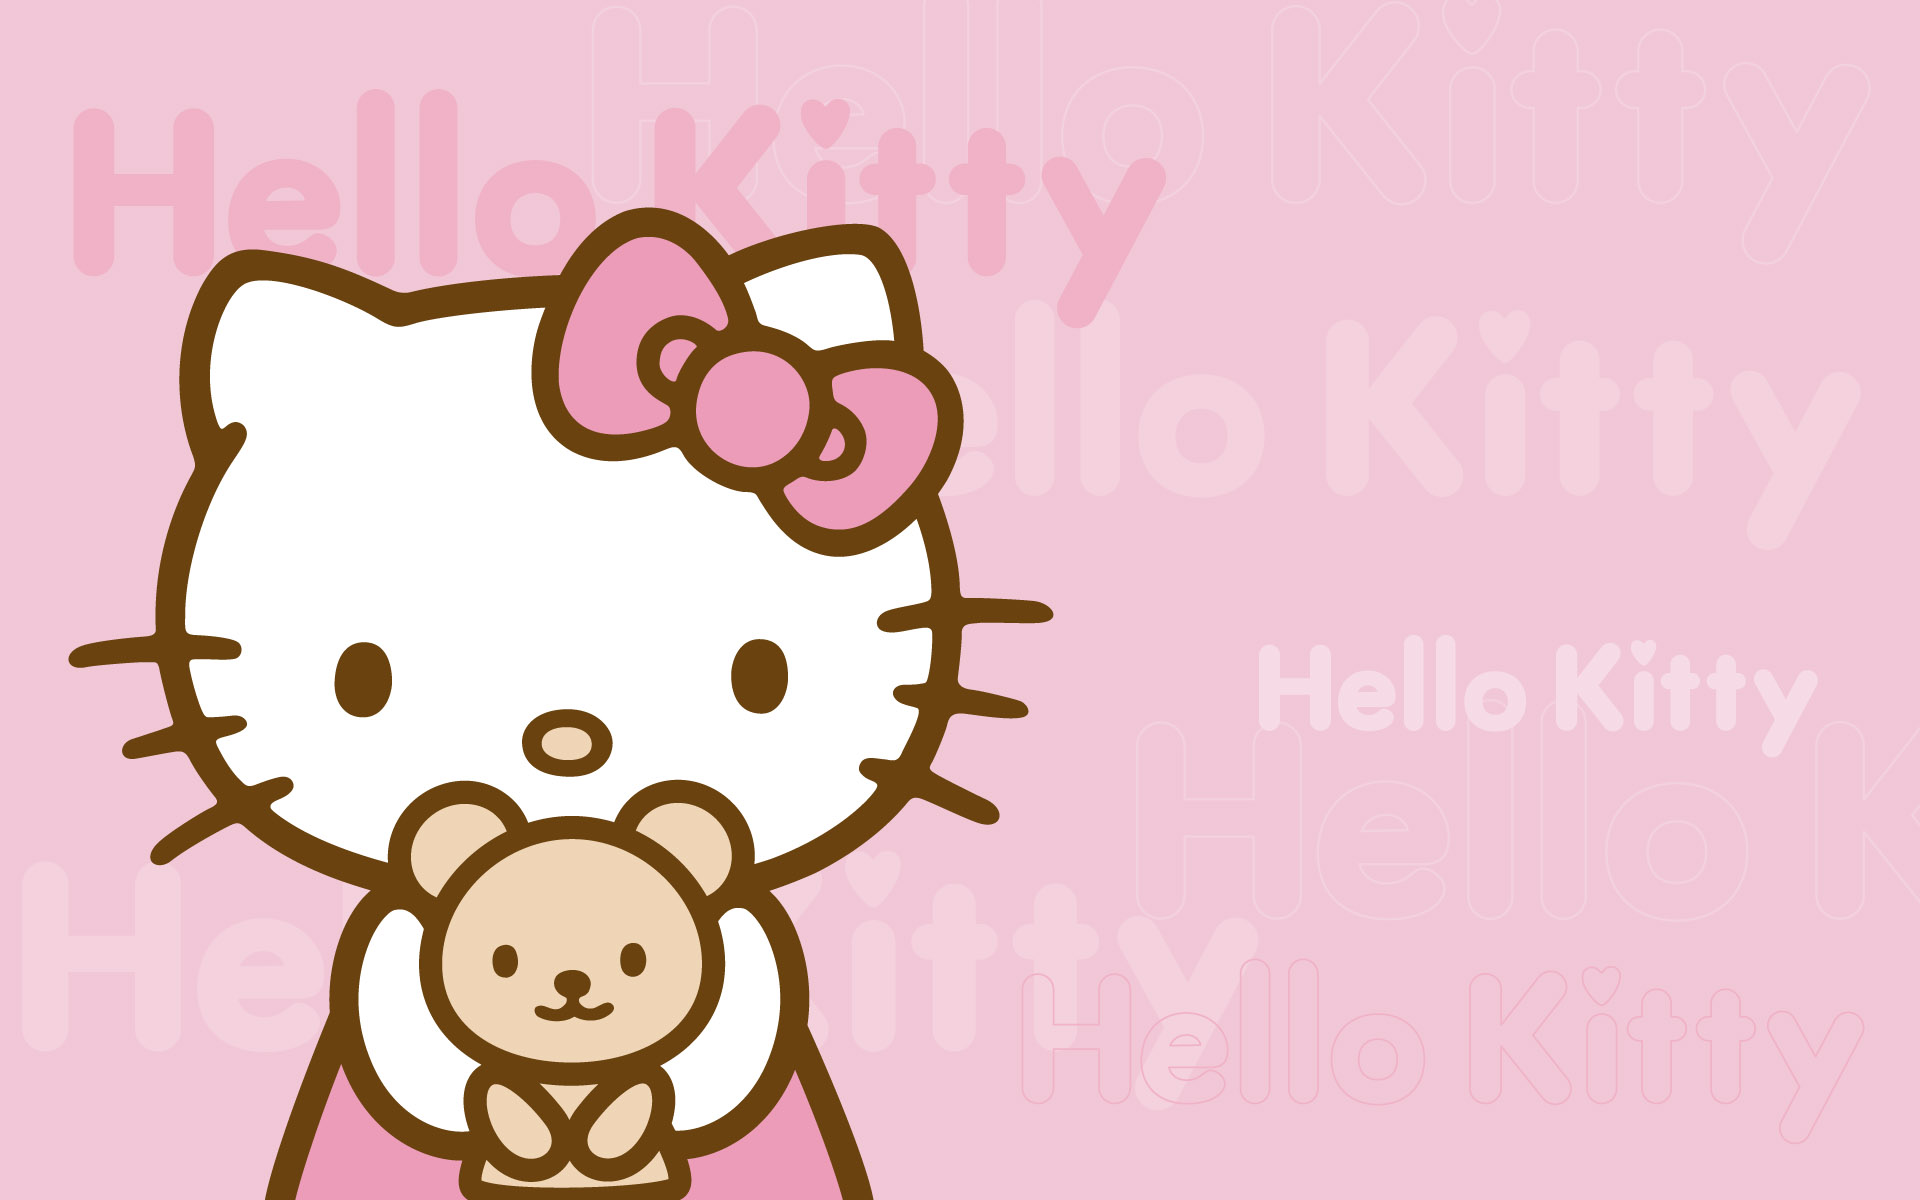 Hello Kitty fondo rosado - 1920x1200